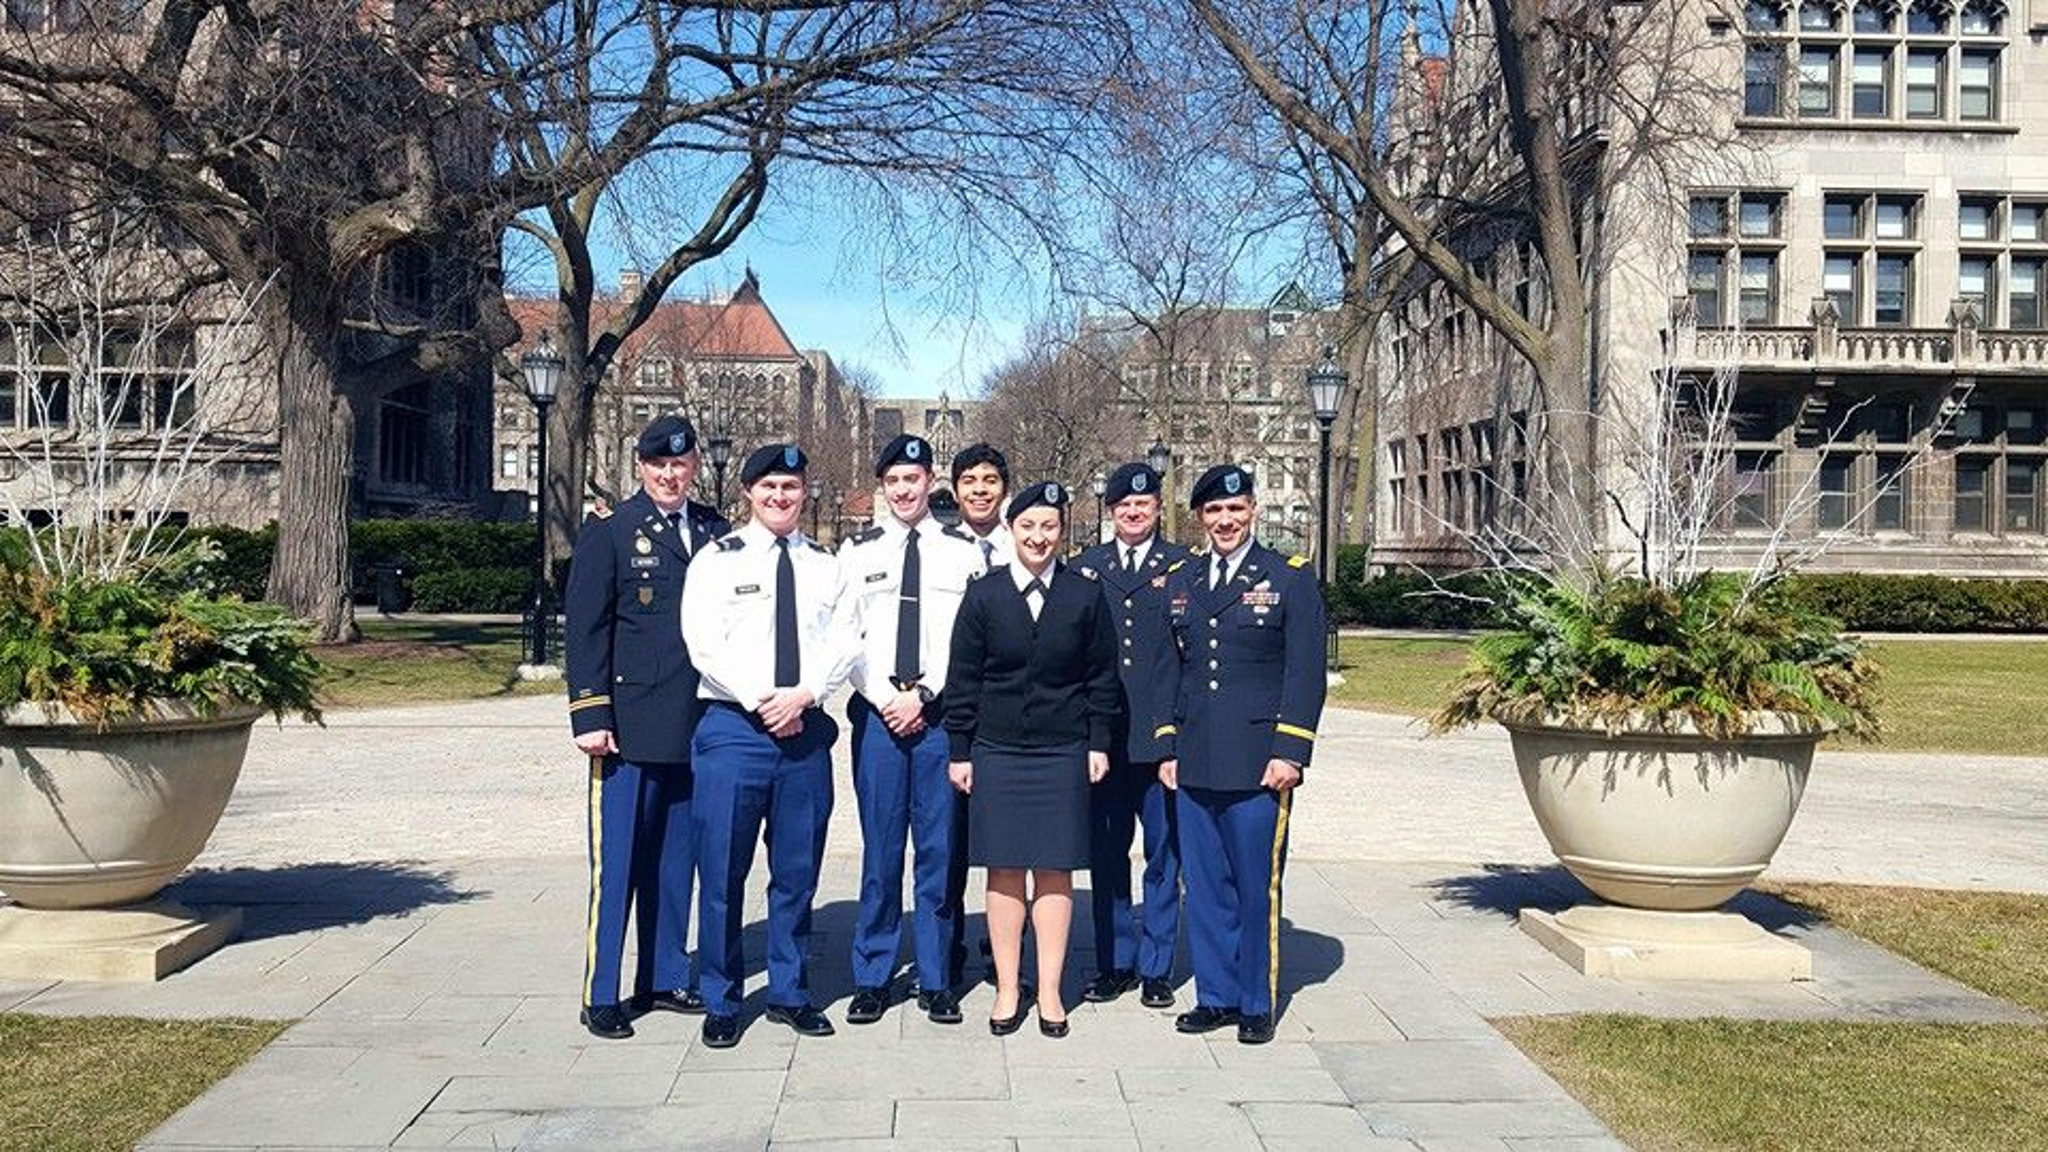 Home | Army ROTC | The University of Chicago